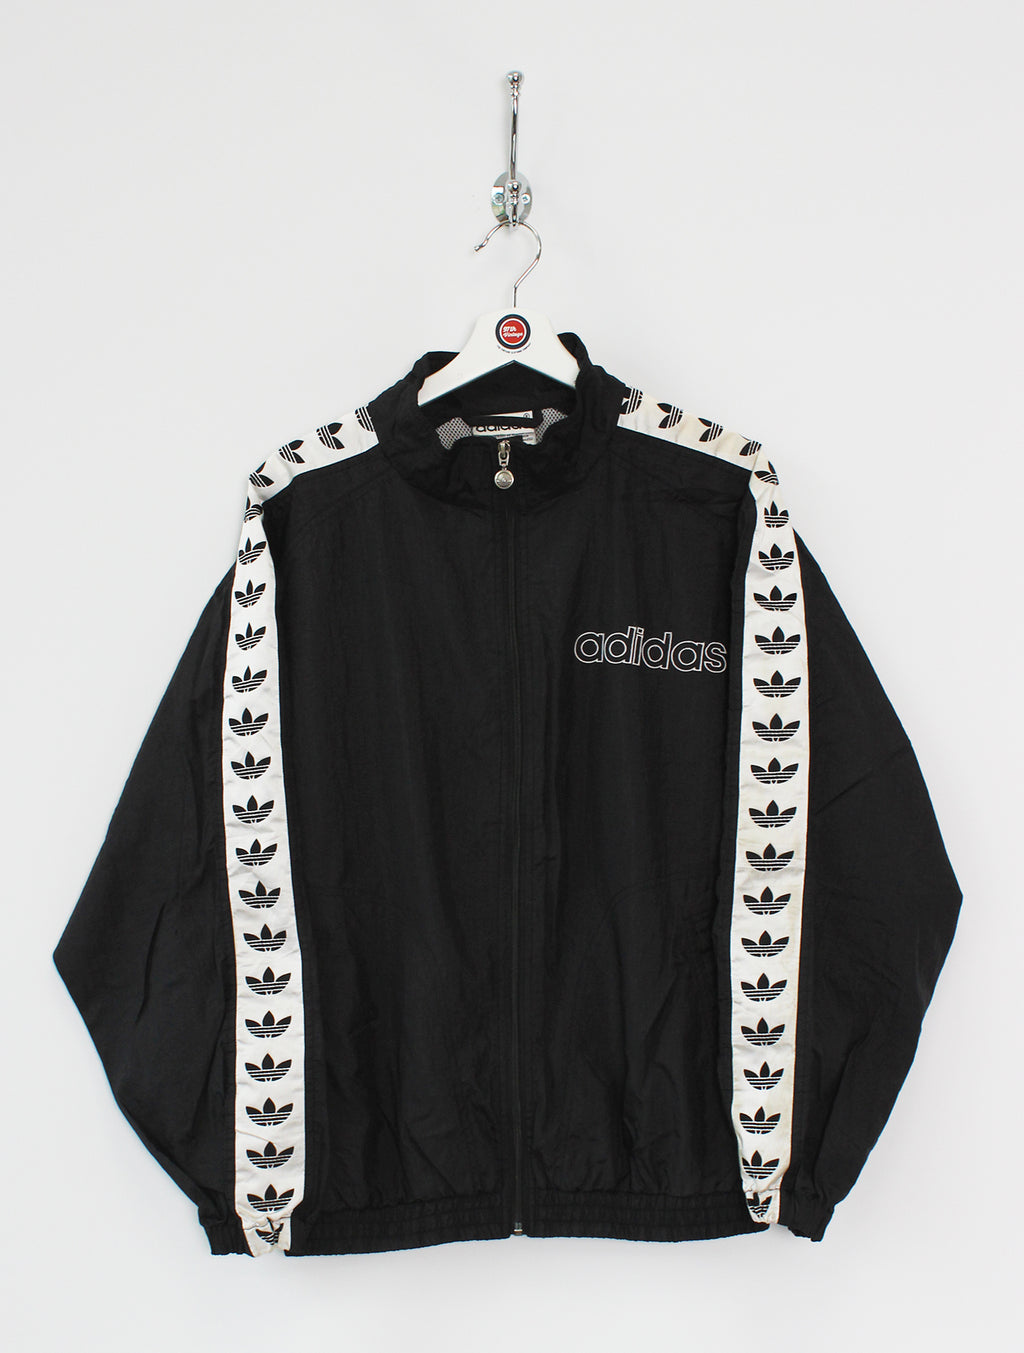 Adidas Shell Suit Jacket (M)